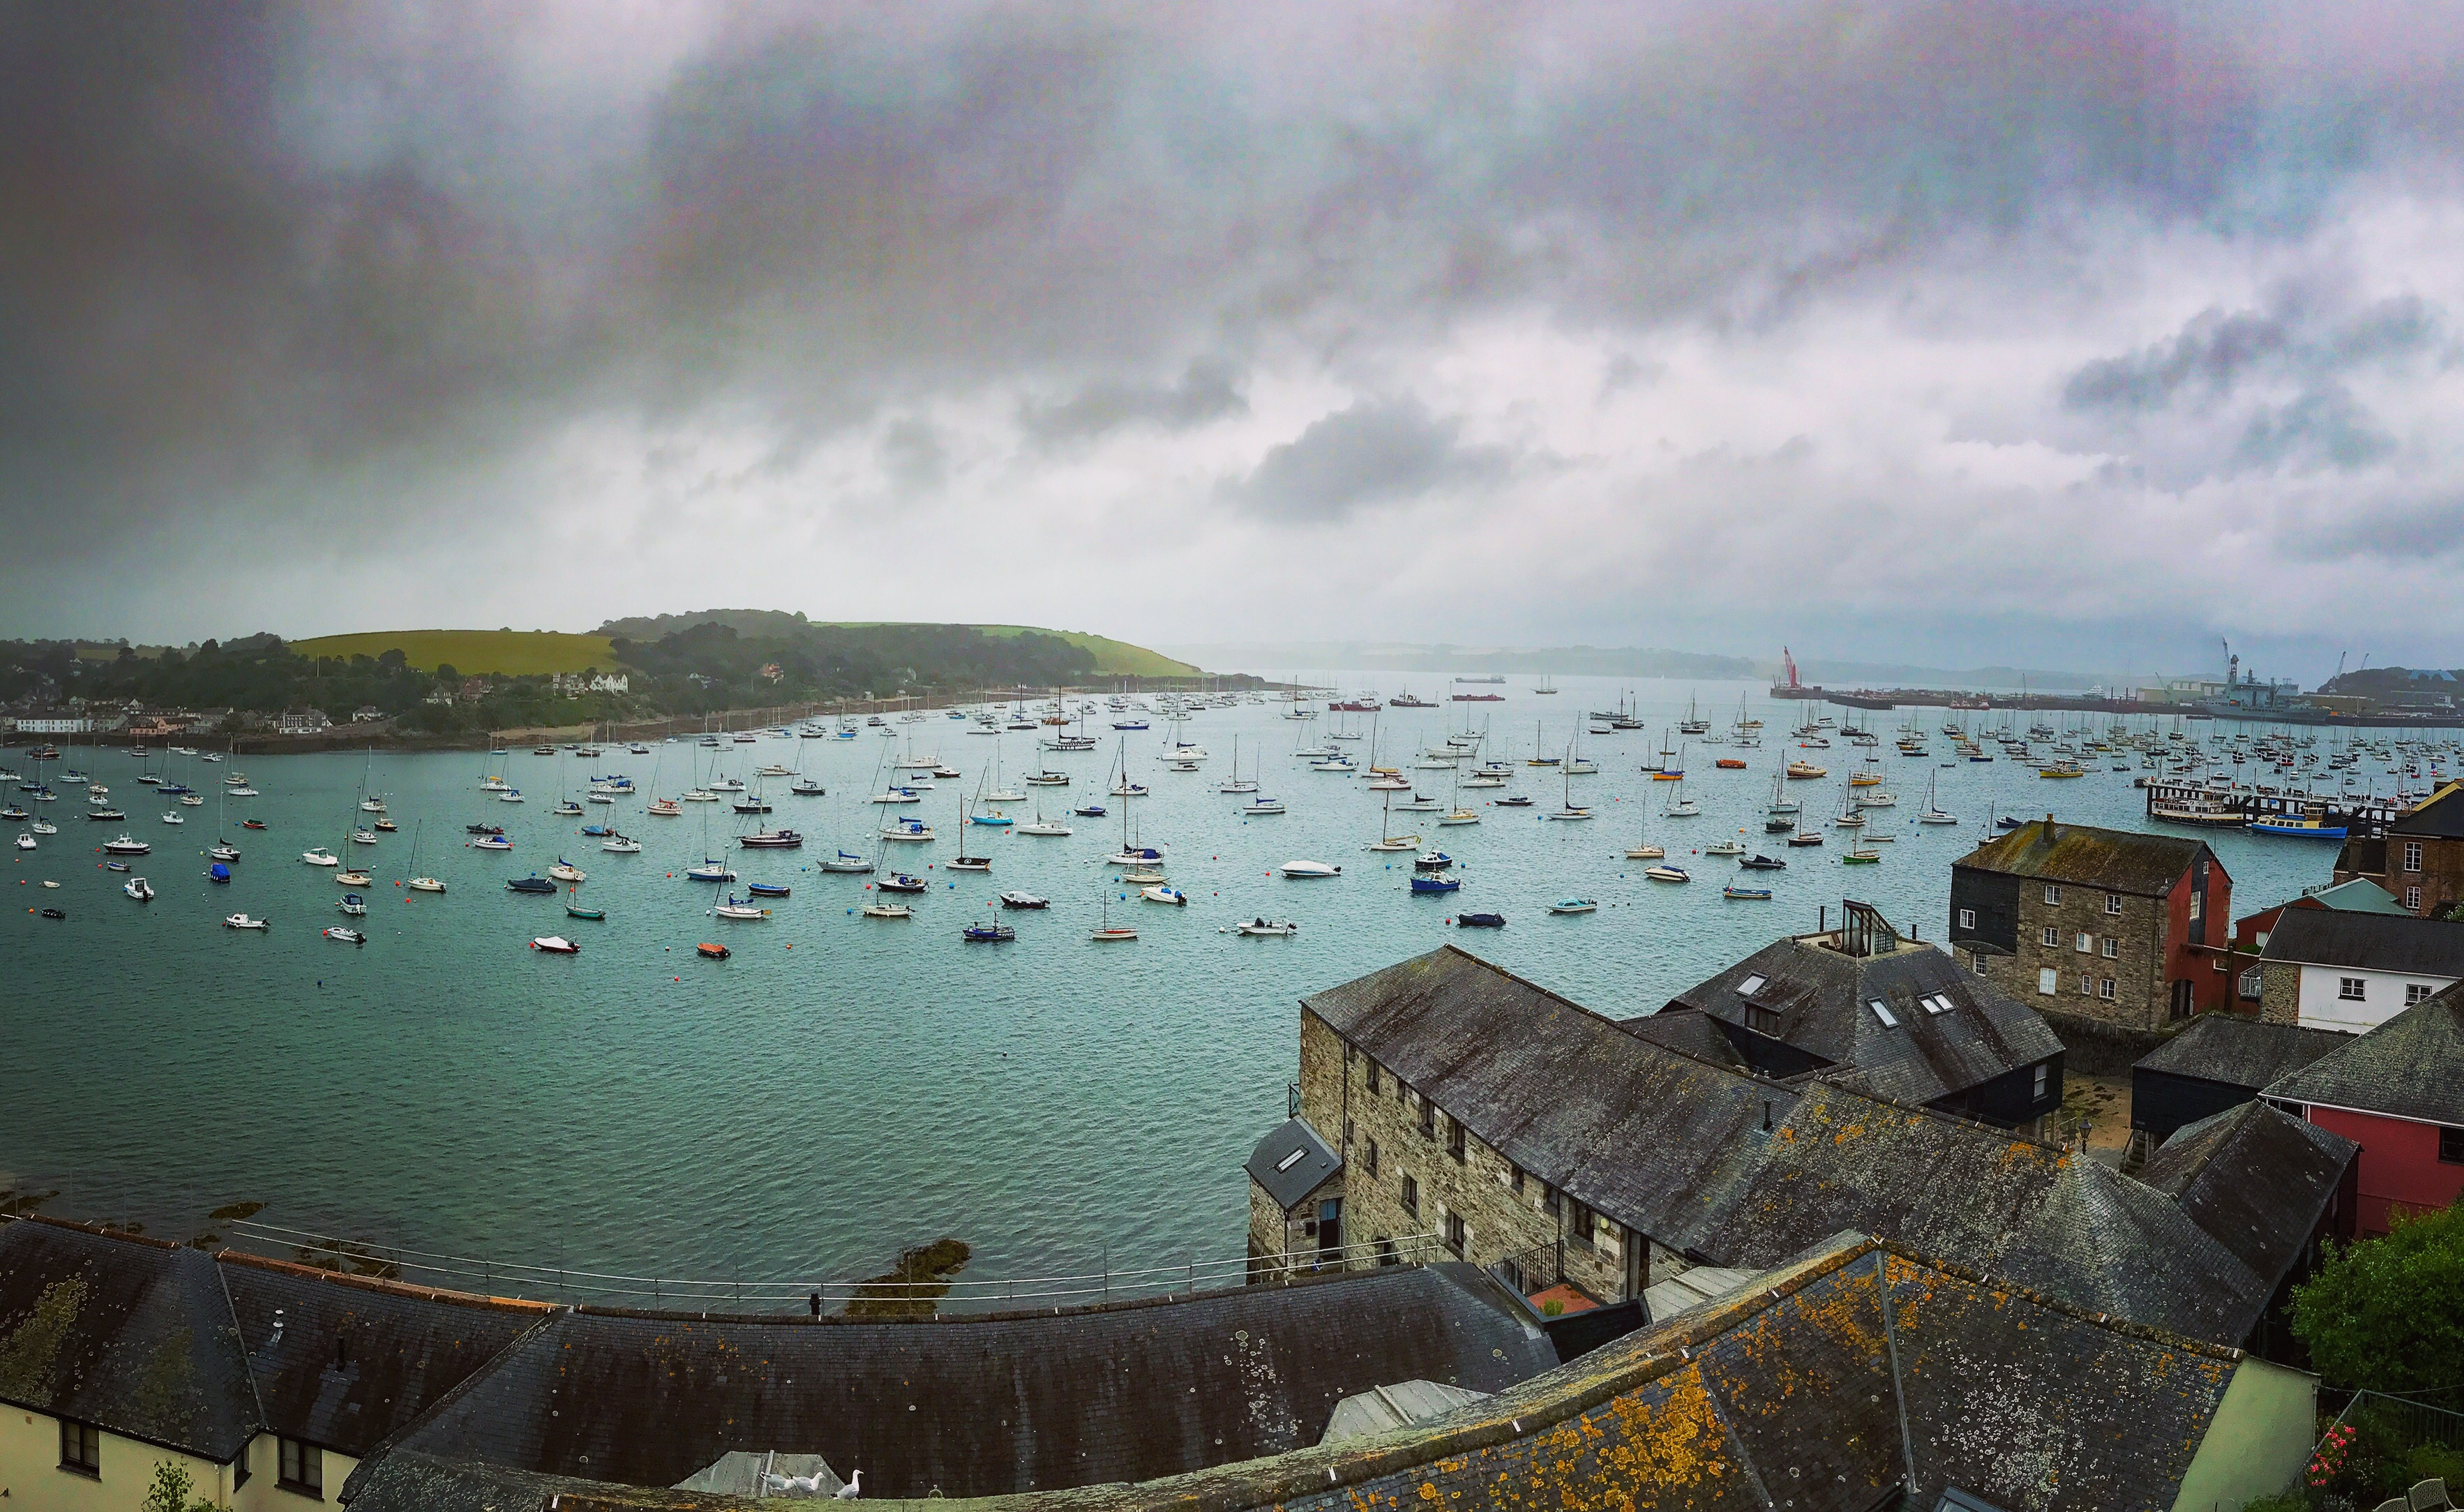 The Star and Garter Falmouth is an award-winning pub with The Penthouse Air BnB above it with views over Falmouth harbour